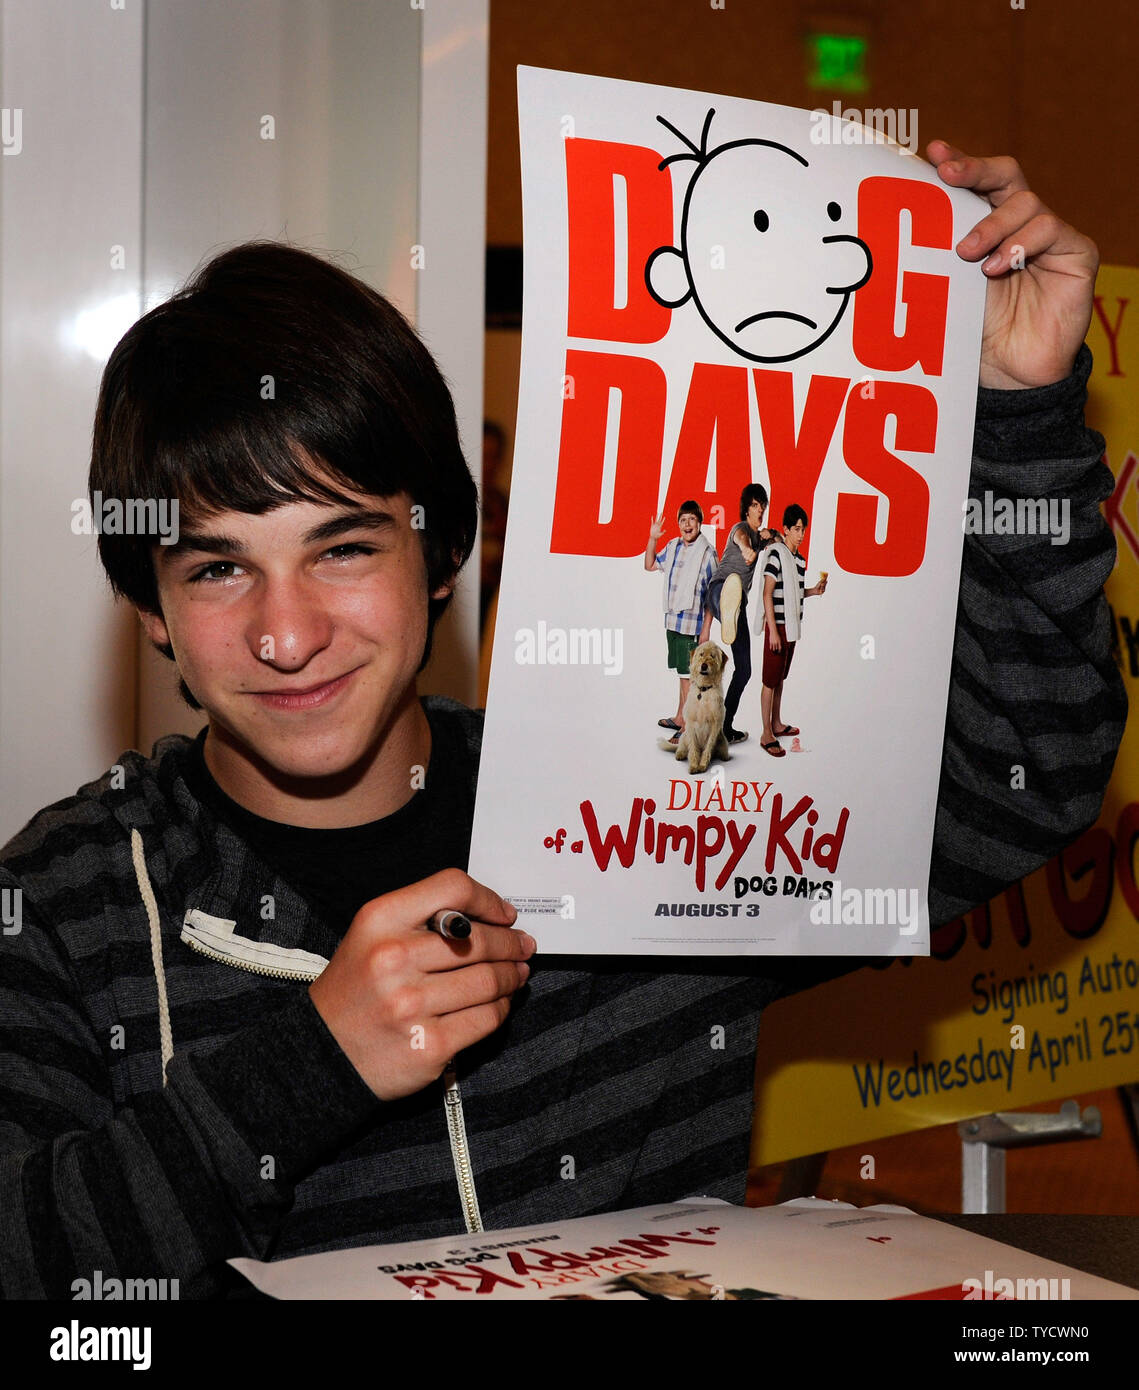 Diary Of A Wimpy Kid Movie High Resolution Stock Photography And Images Alamy